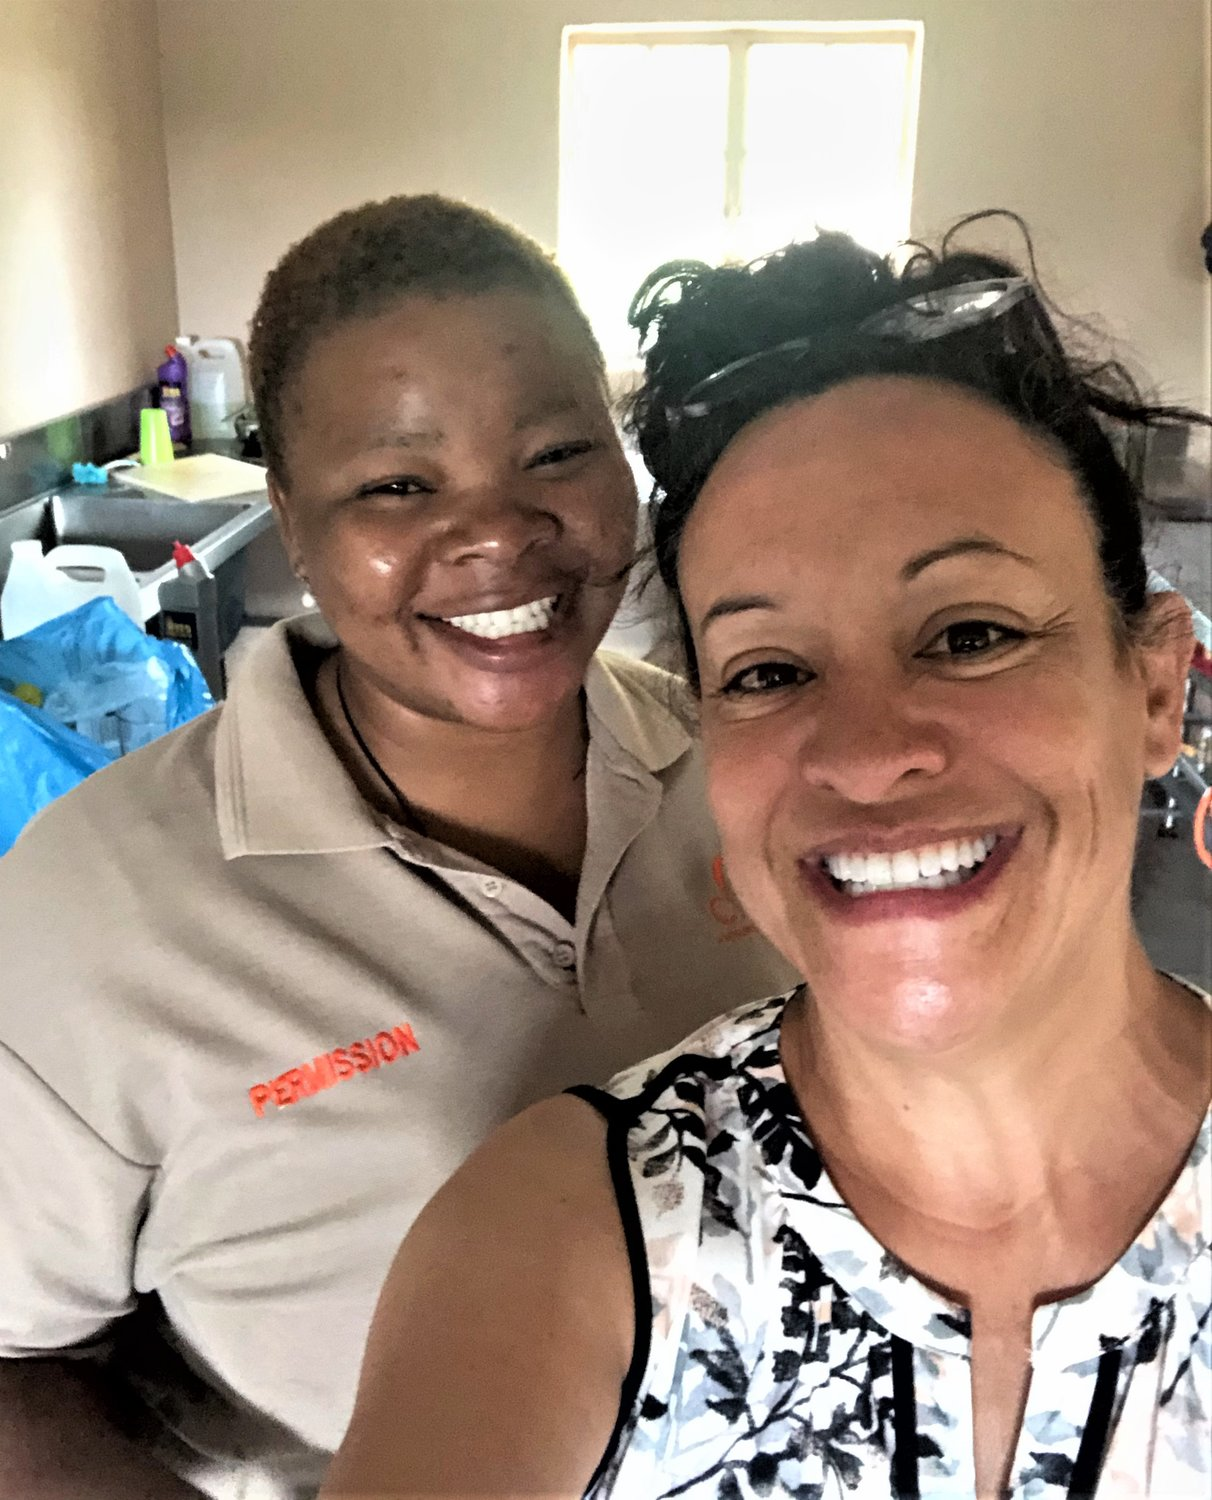 Cammy Montoya shares a light moment with staff member Permission Ngobeni as she says farewell to three weeks in South Africa.